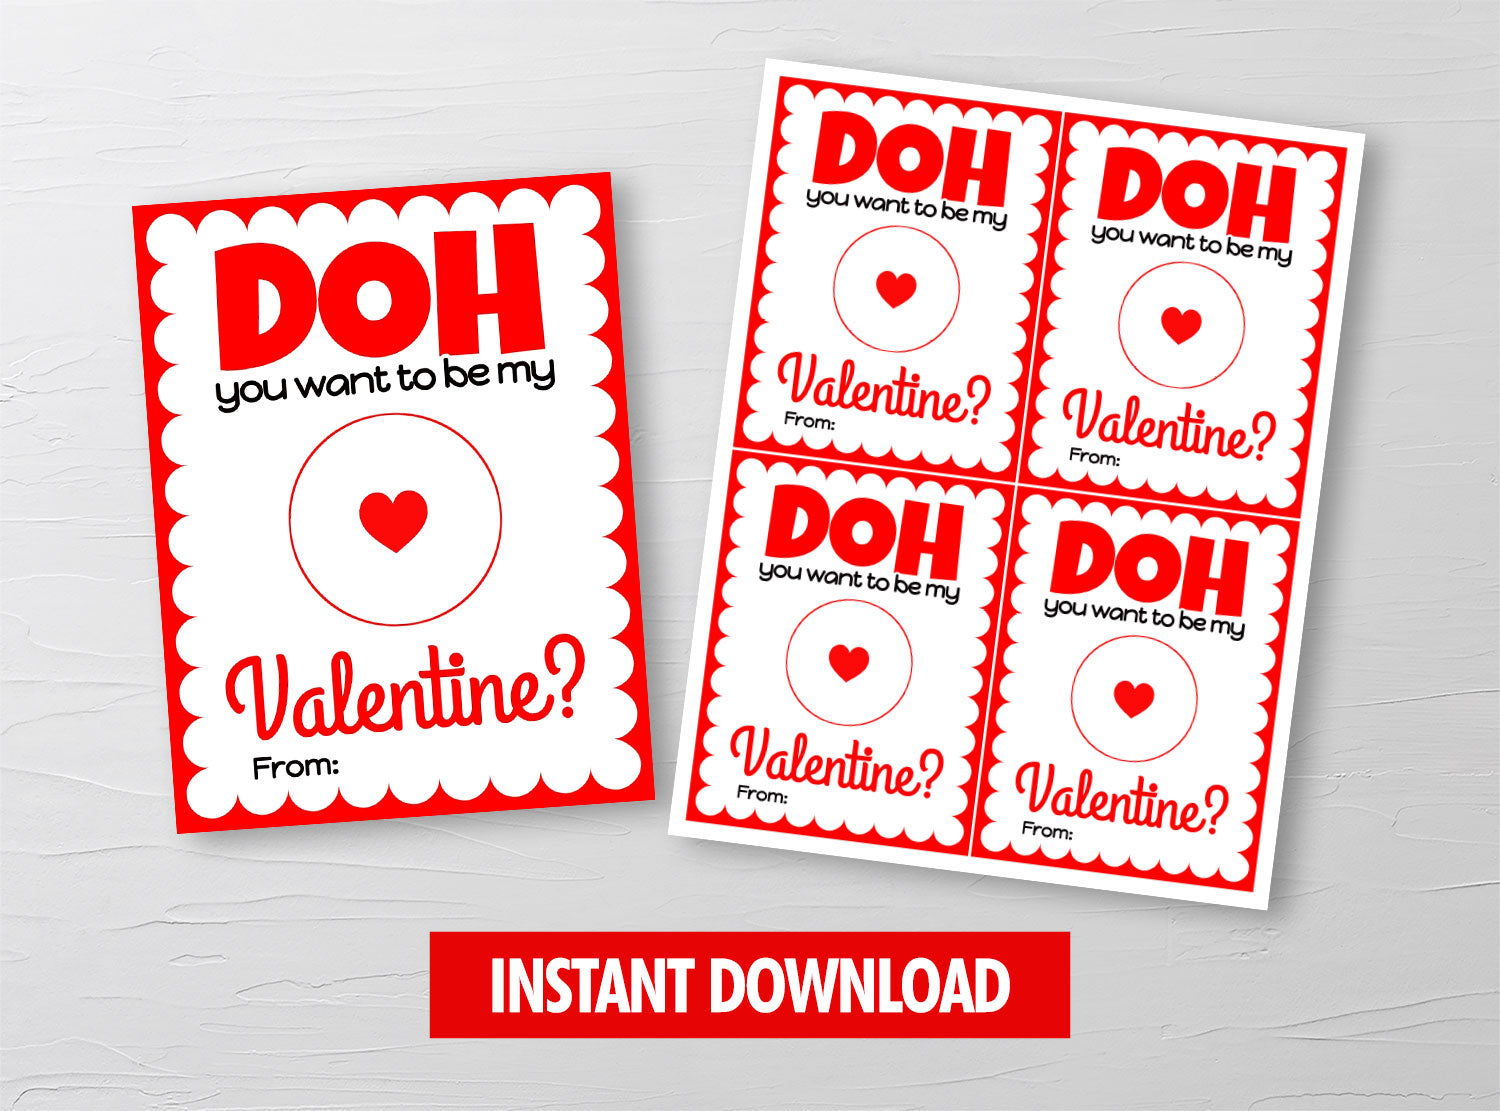 DOH you want to be my Valentine? Red Card Holder, Play Dough Preschool Exchange Ideas, INSTANT DOWNLOAD - TitaTipsPrintables